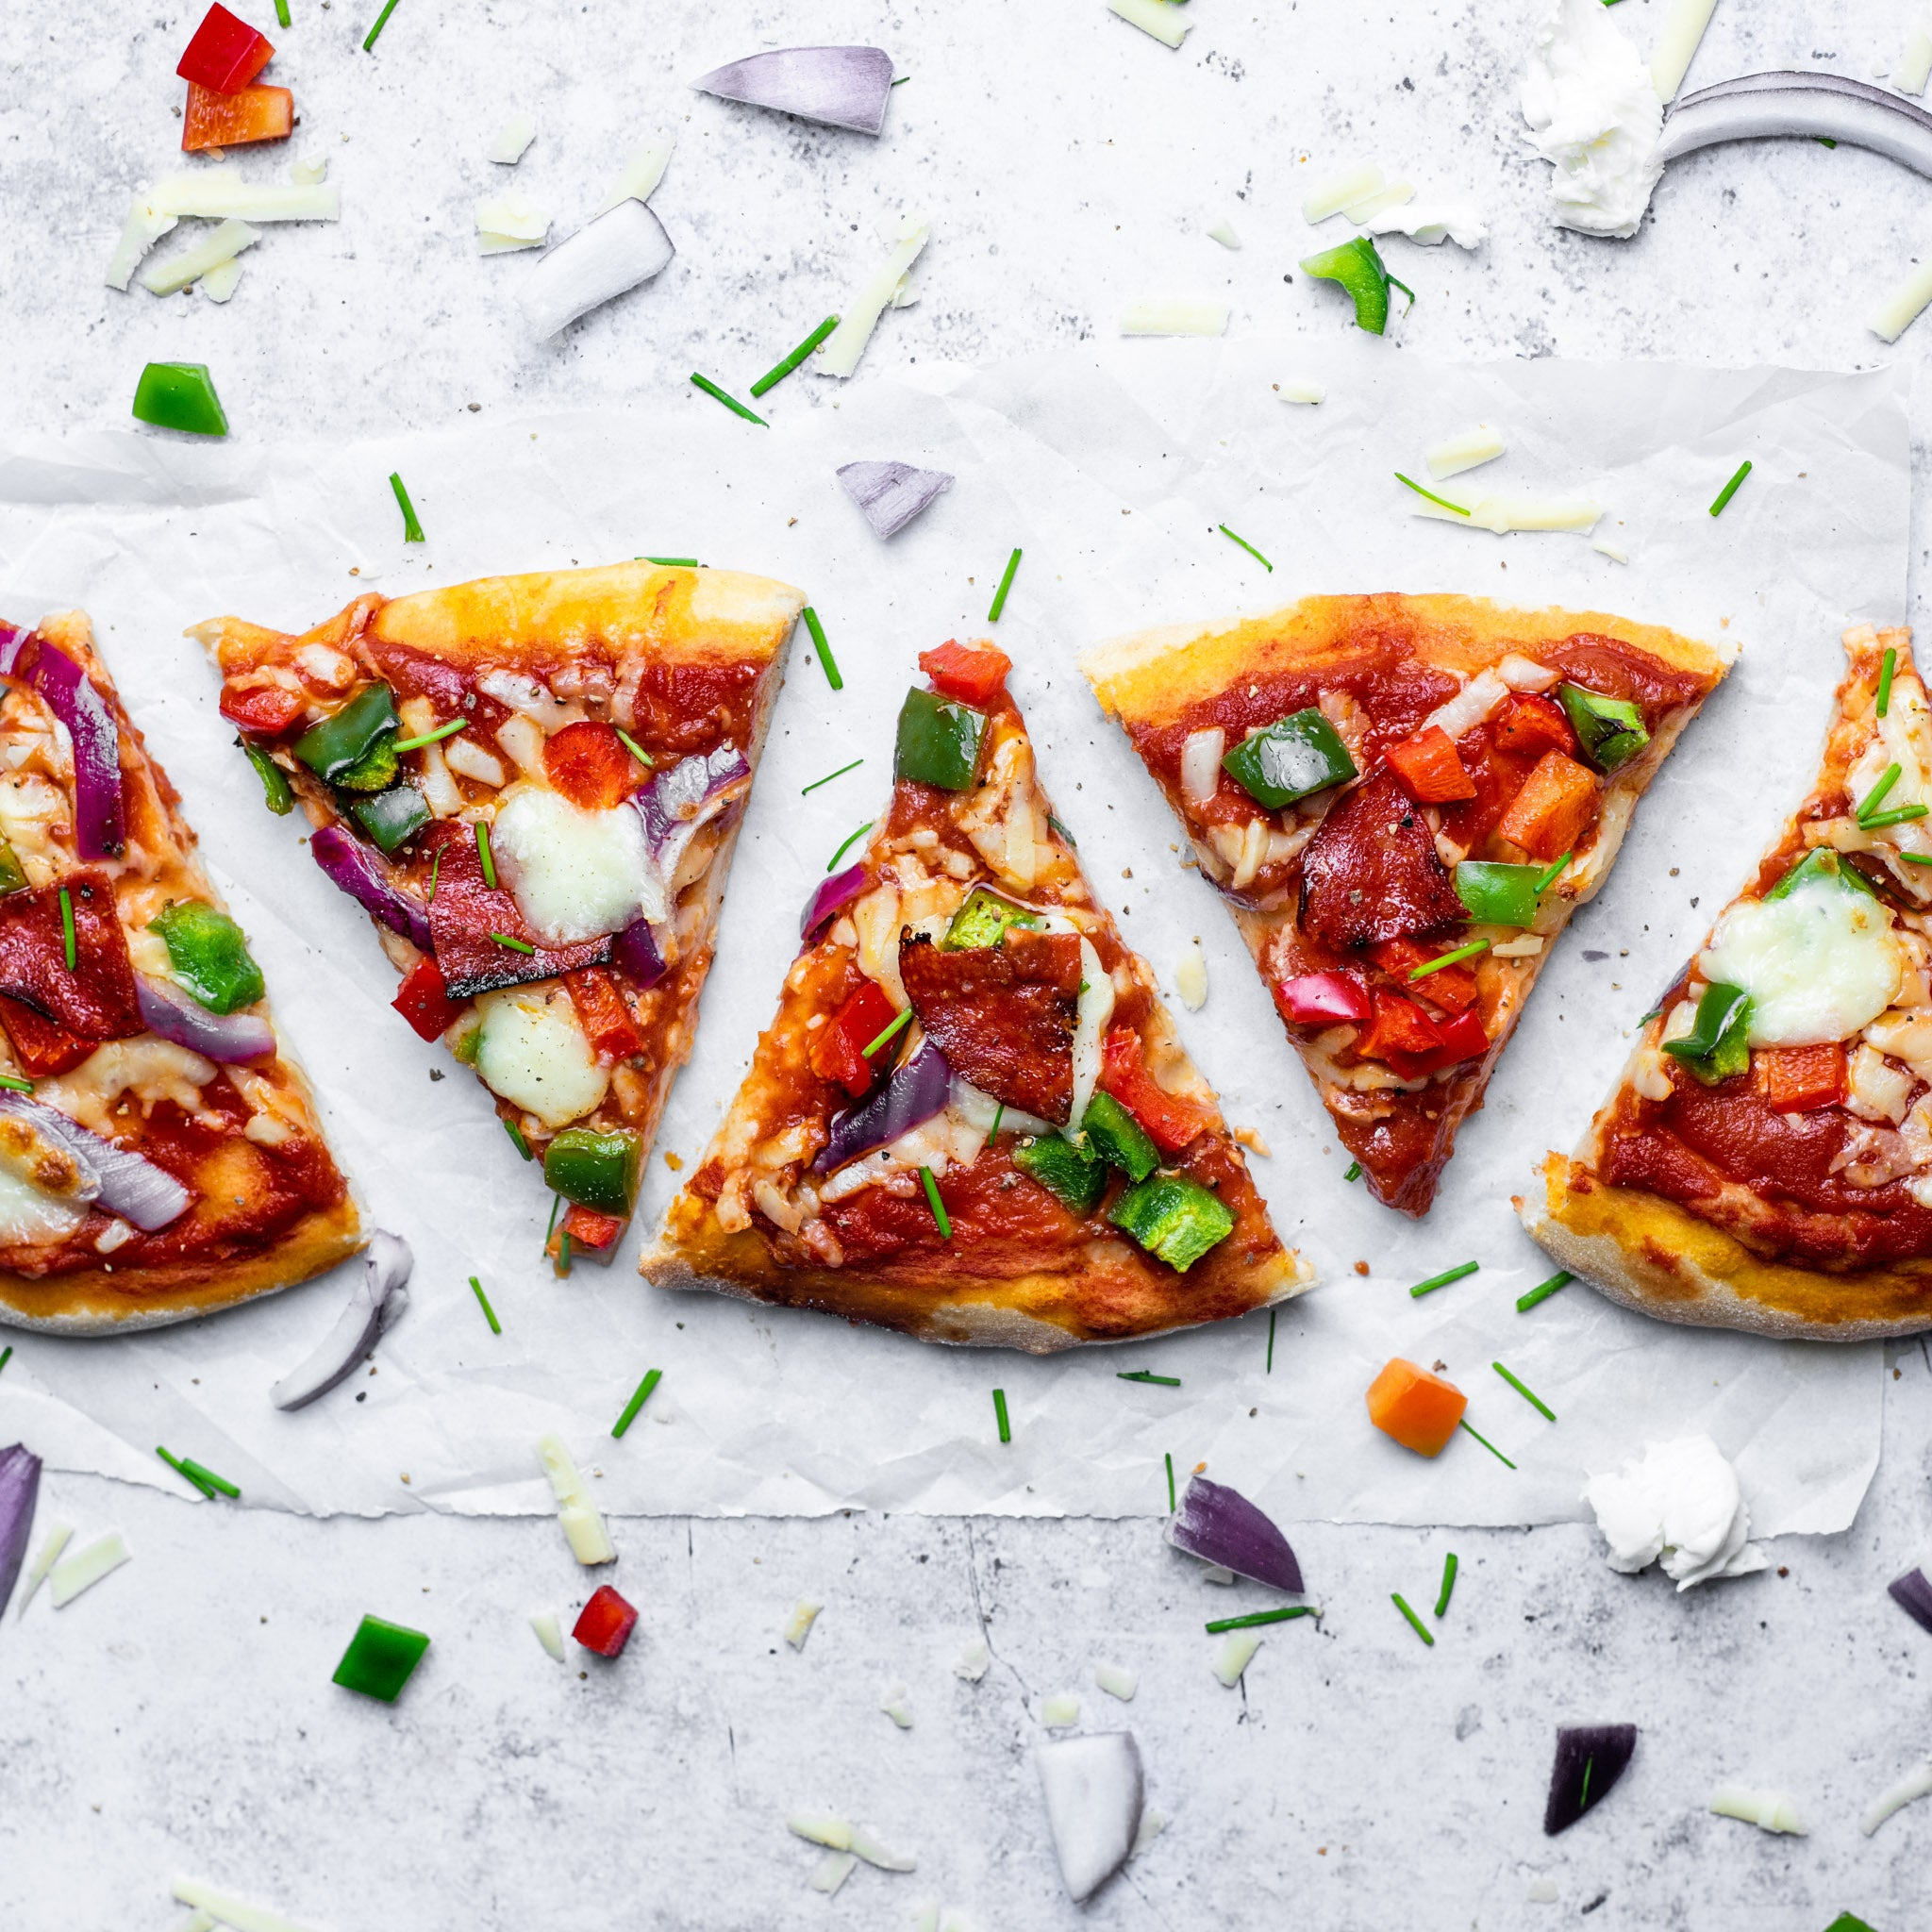 A line of single vegetarian pizza slices made from allinson's bread flour for pizza bases